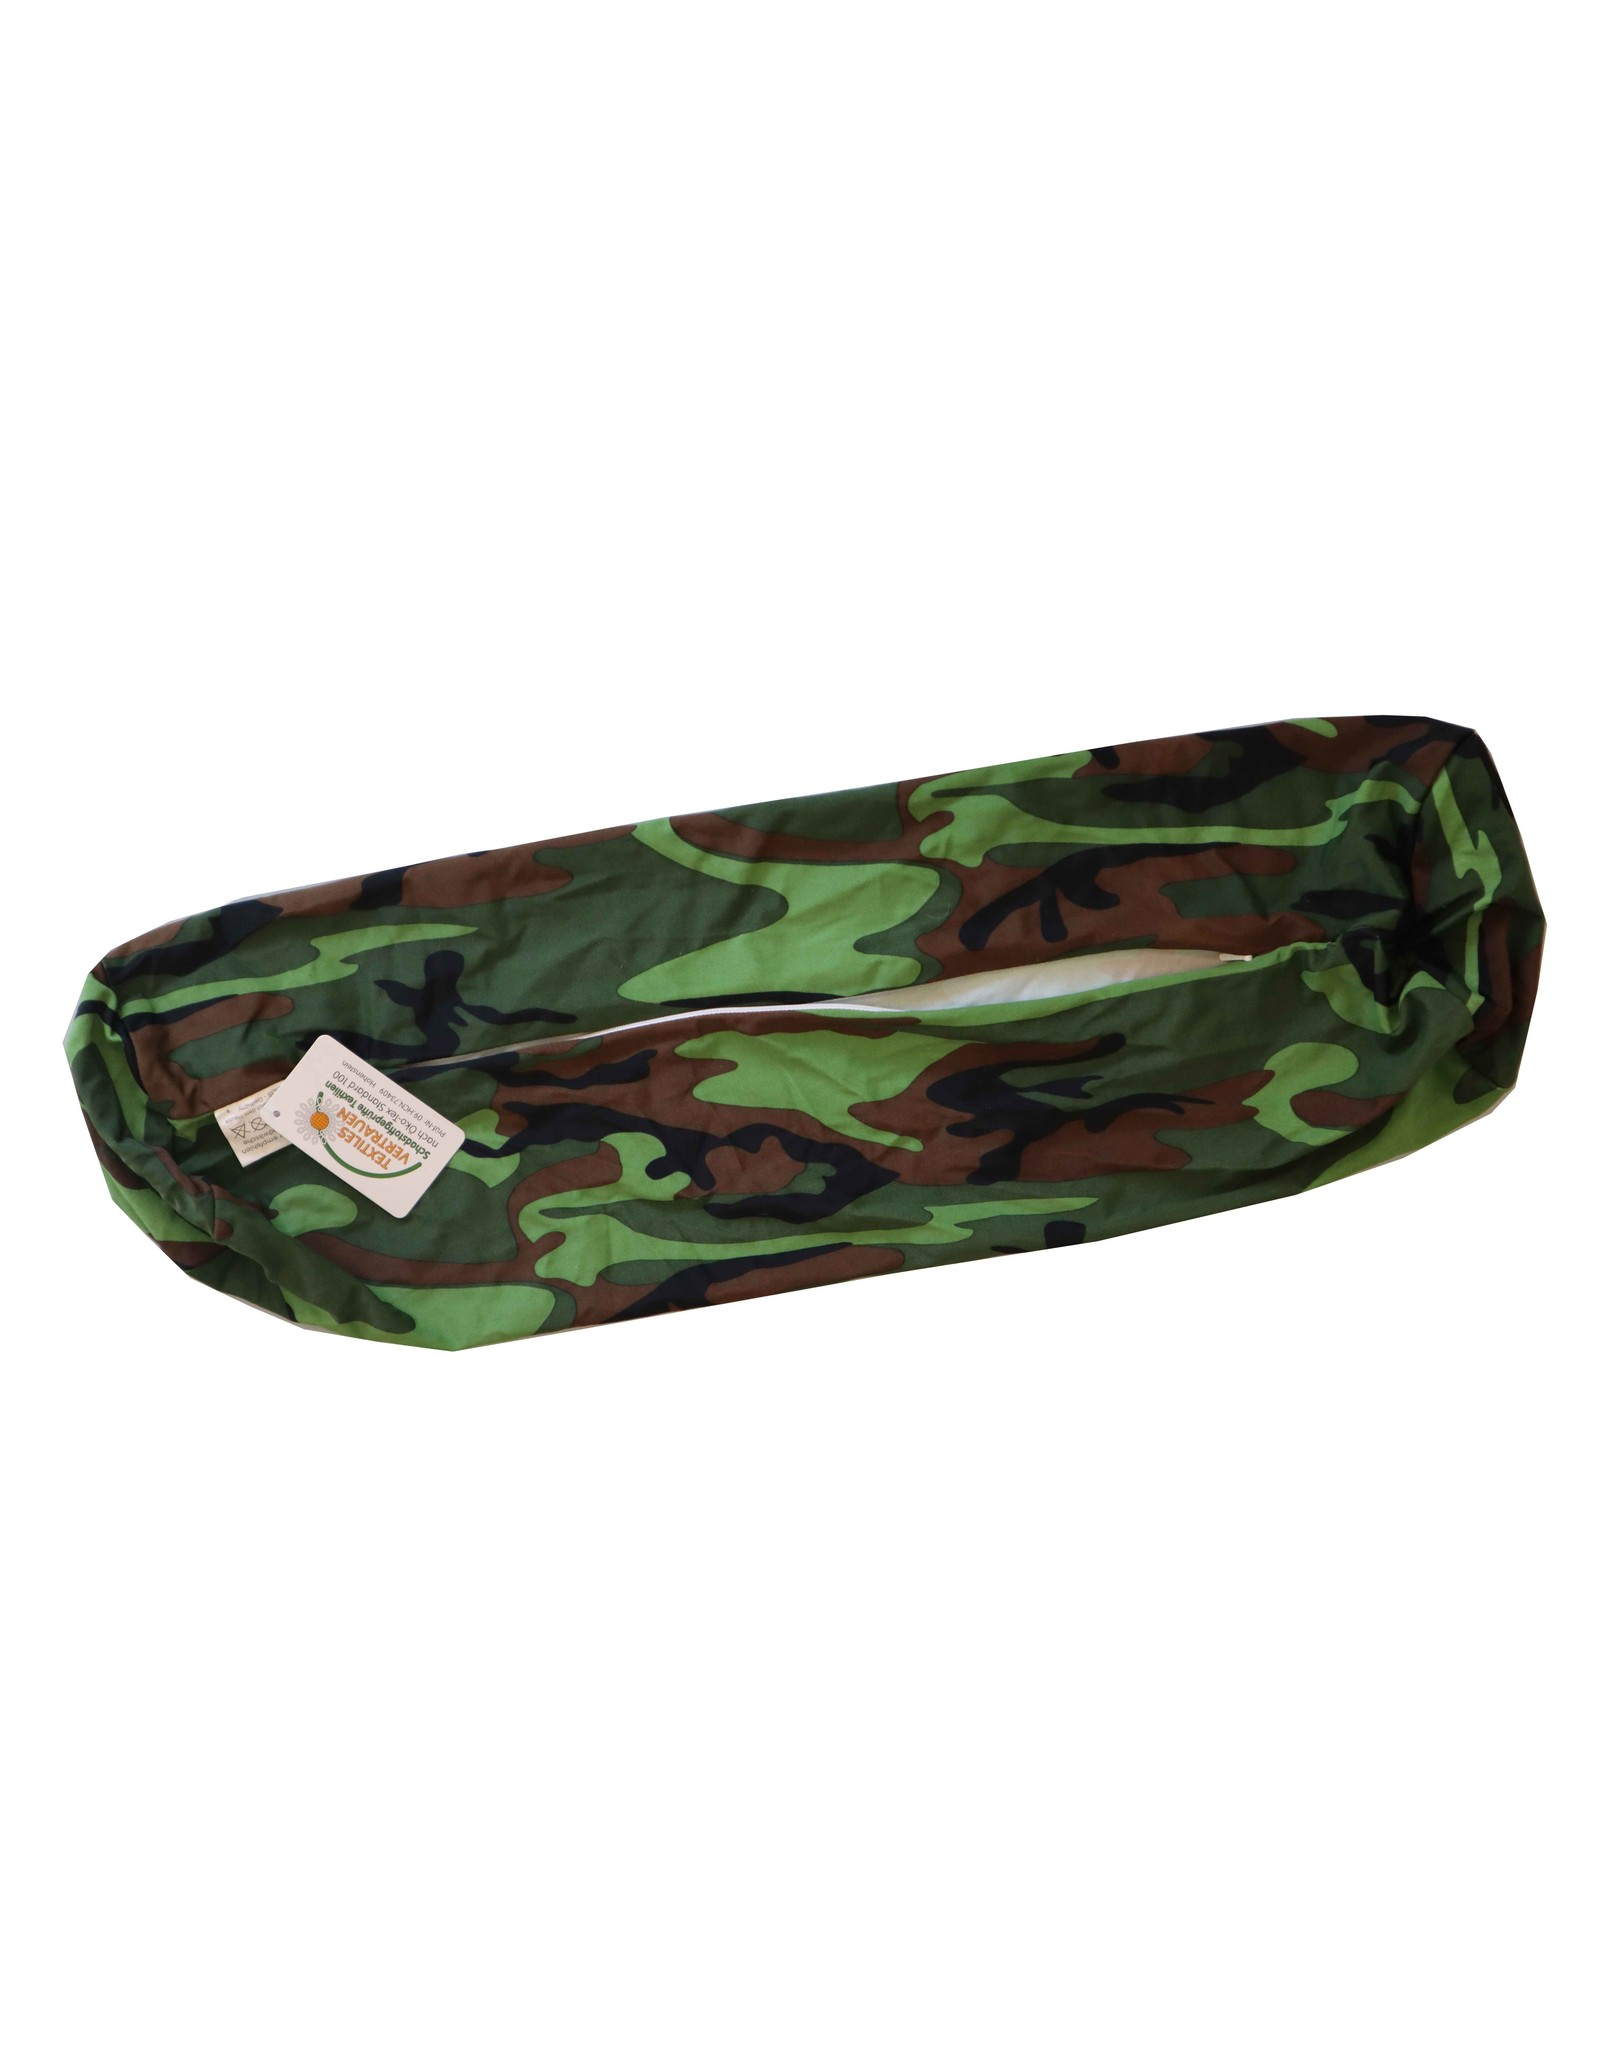 Kuschel-Maxx Cover Kuschel-Maxx - Army Large for 2 Rolls